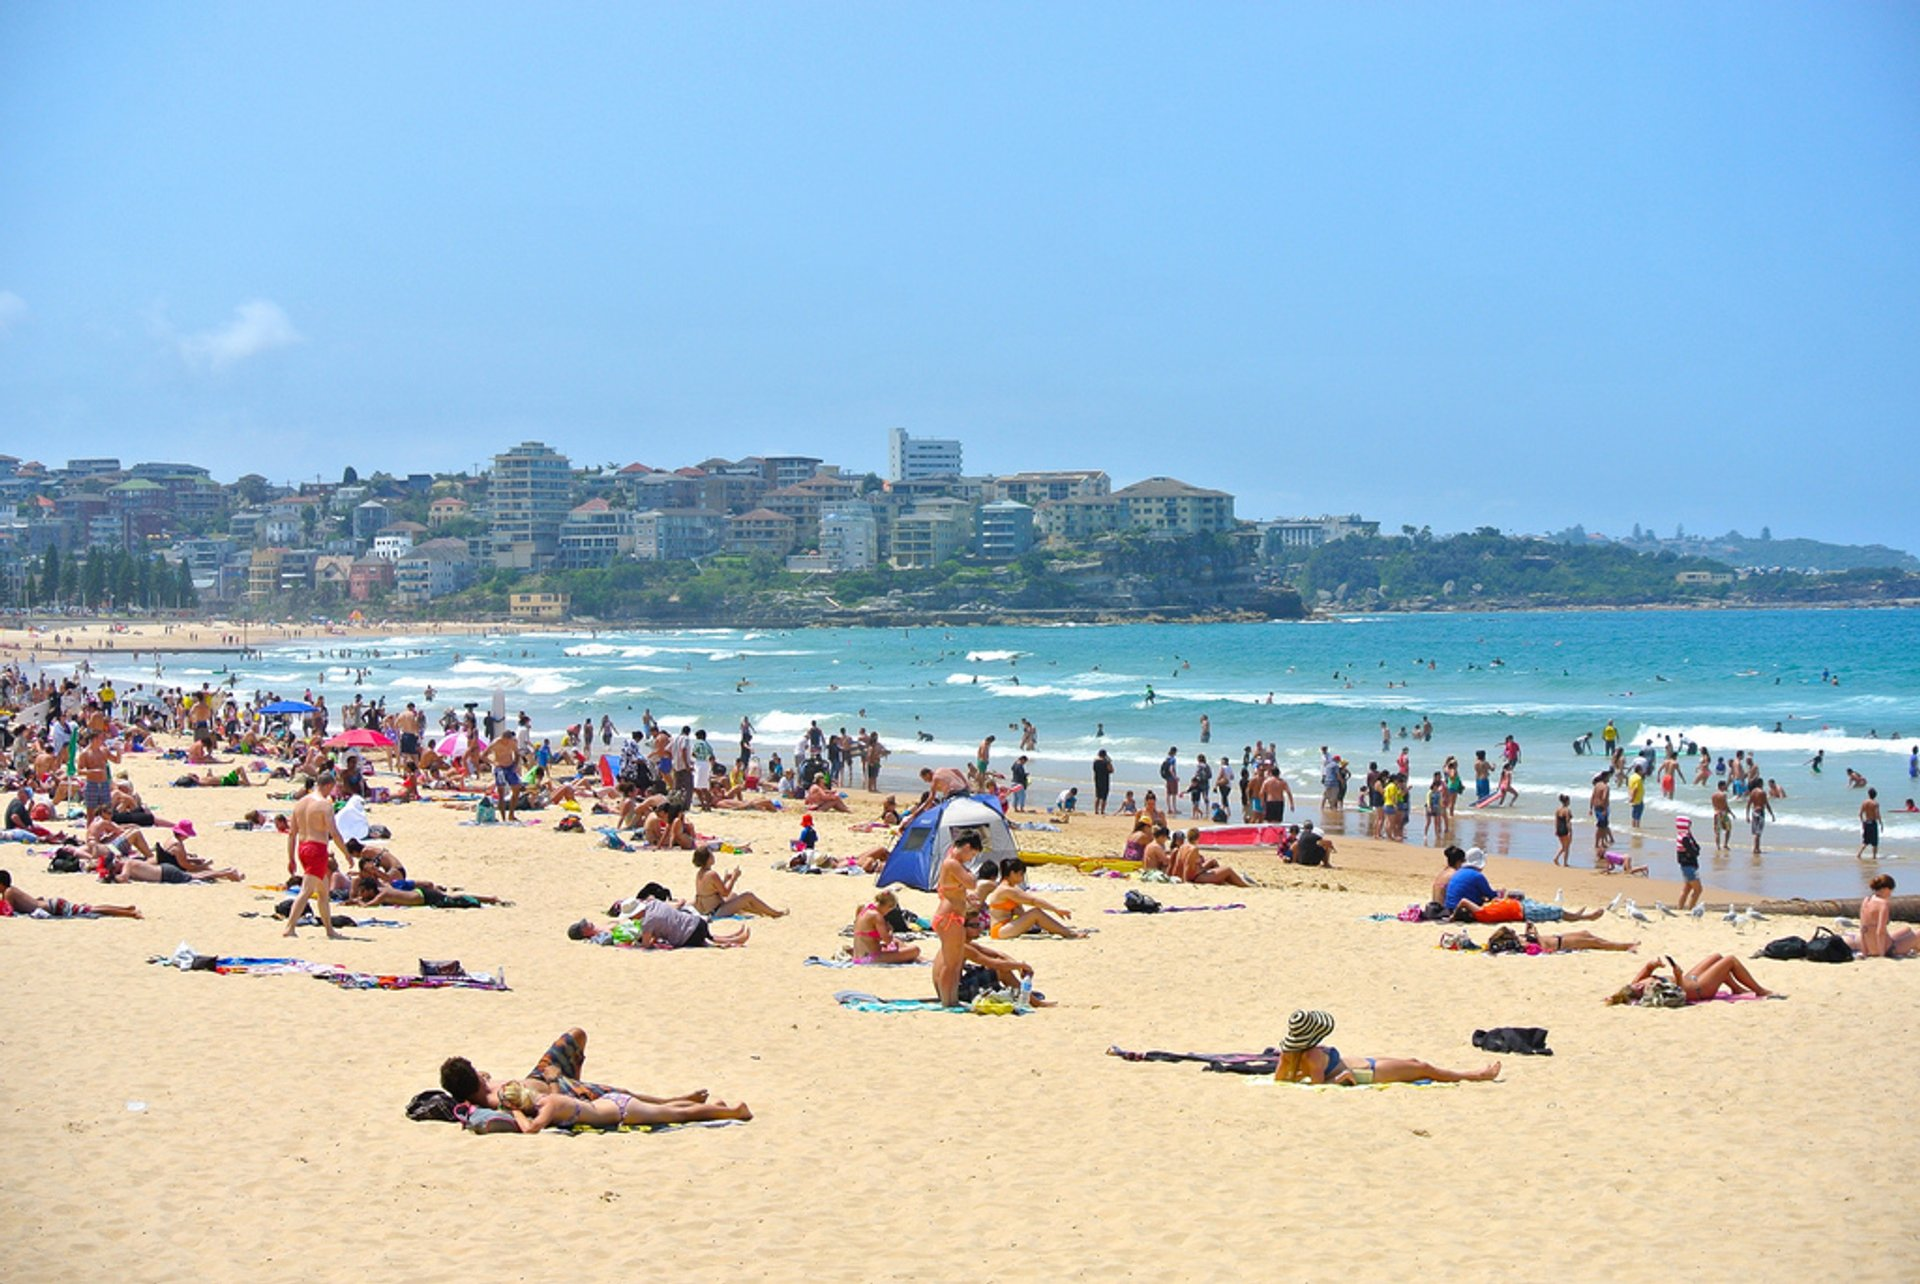 Manly Beach gets rather crowded in the summer months